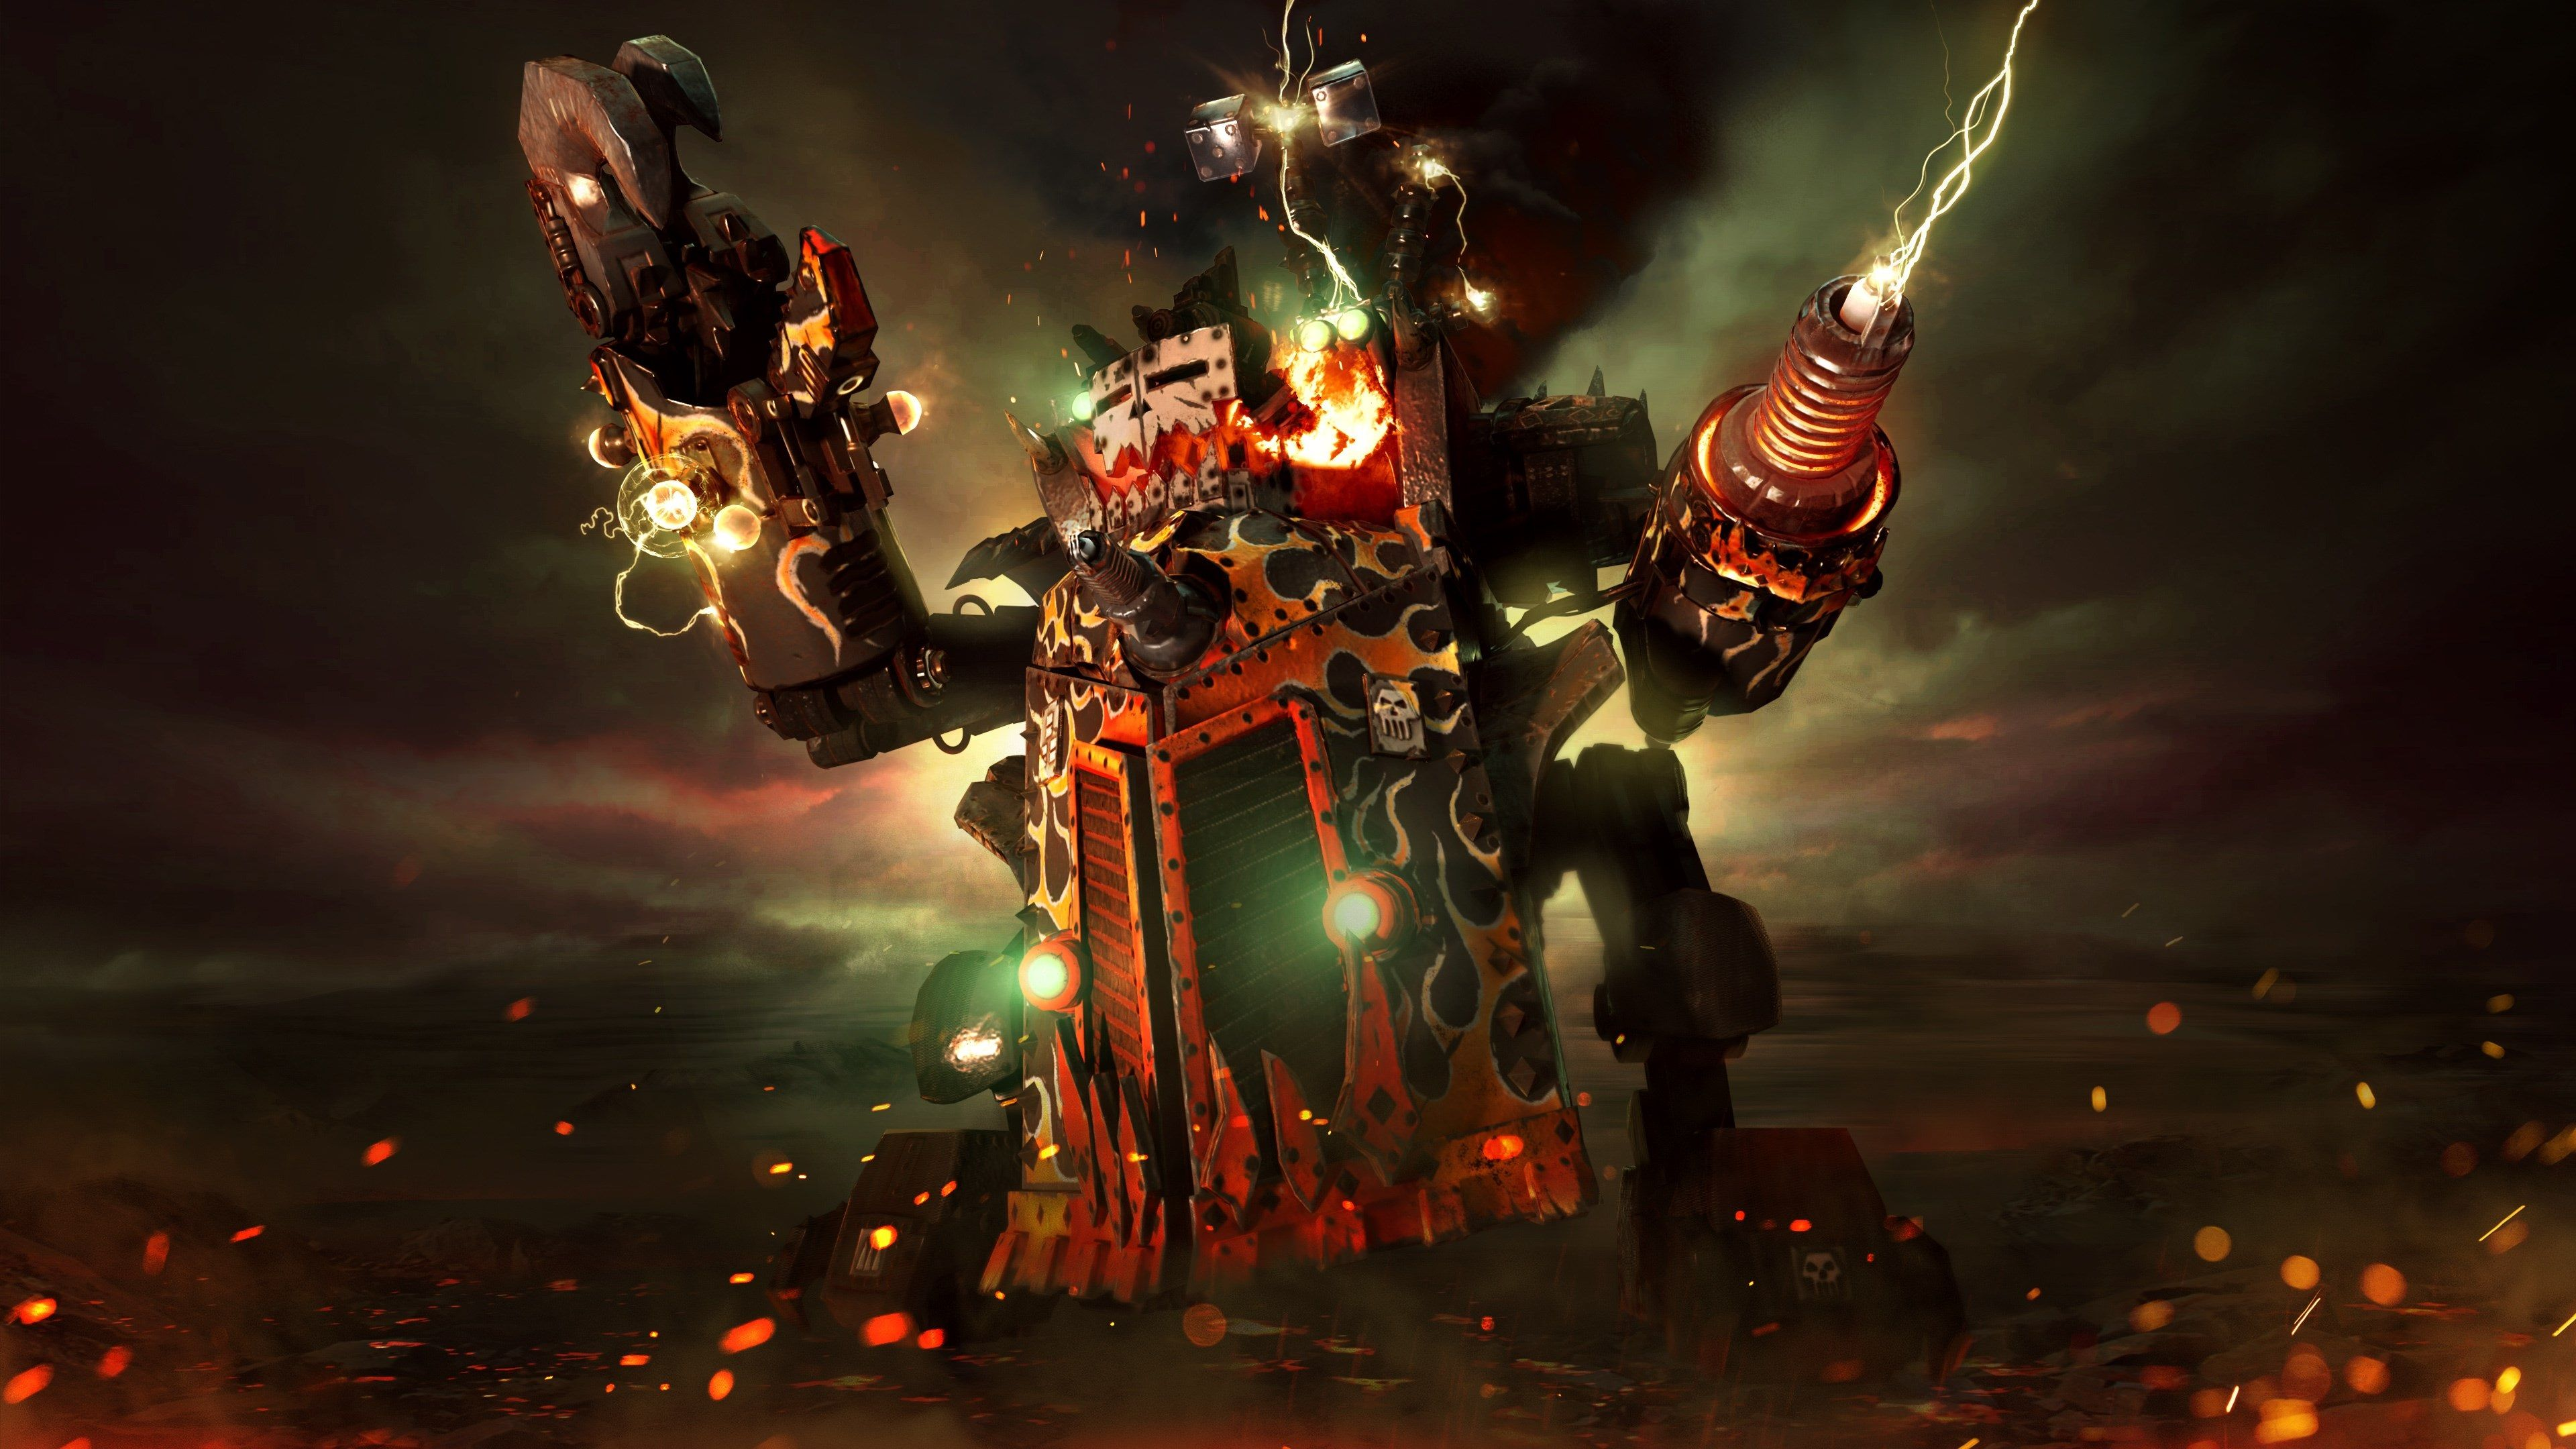 3840x2160 Warhammer 40k 4k Wallpaper For Wide Screen Warhammer Desktop Pictures Warhammer 40000